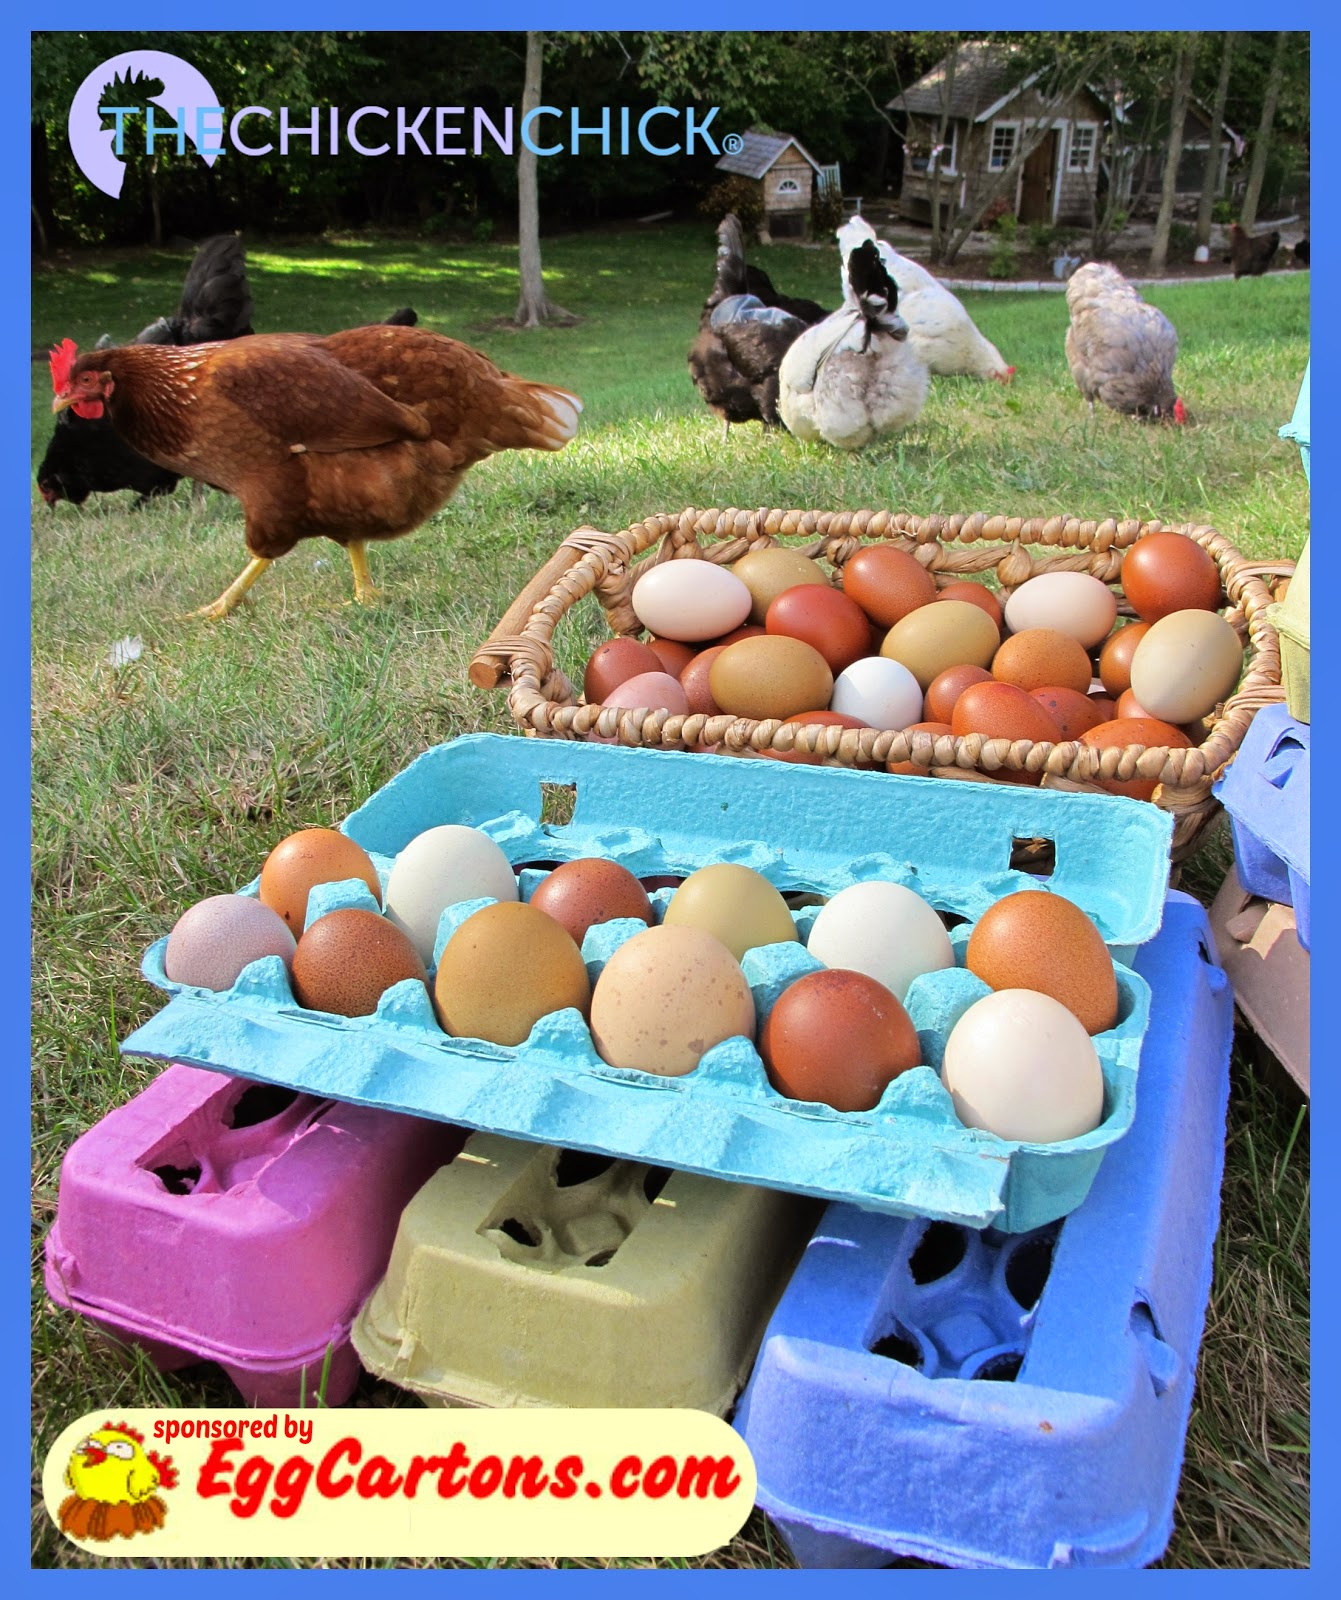 EggCartons.com and The Chicken Chick celebrate National Poultry Day March 19th with a Giveaway-palooza